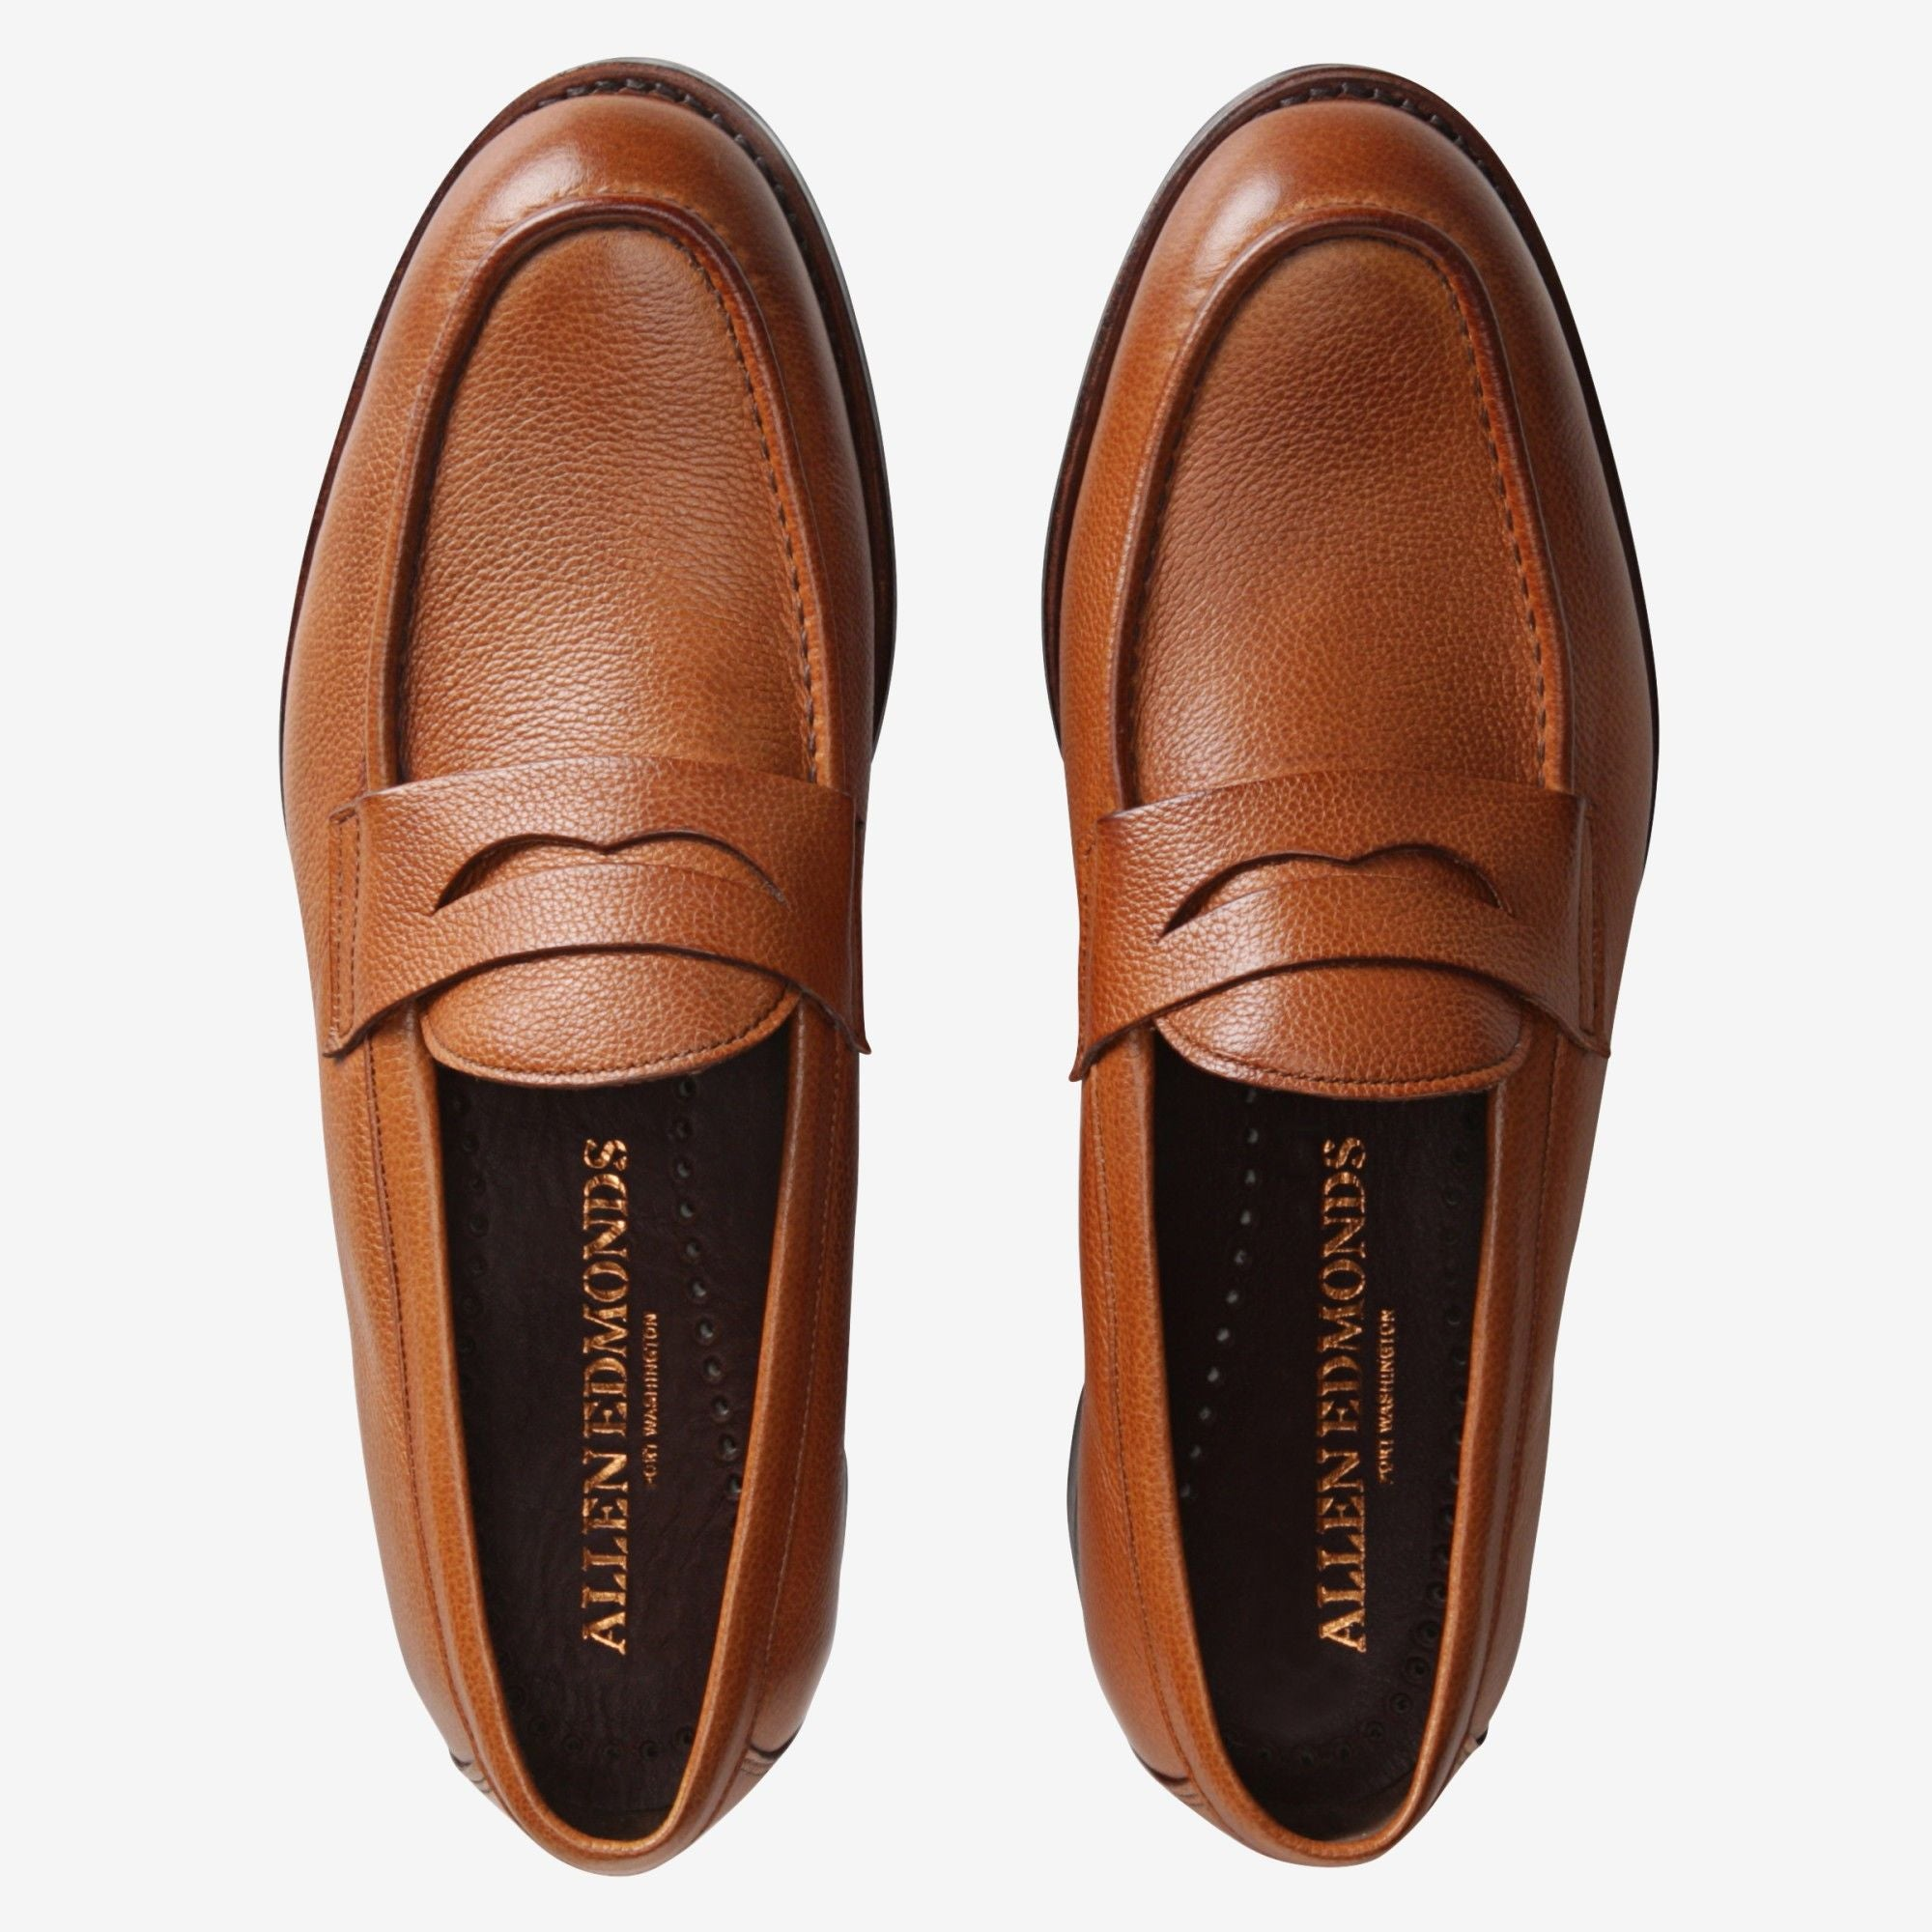 Nomad Penny Loafer